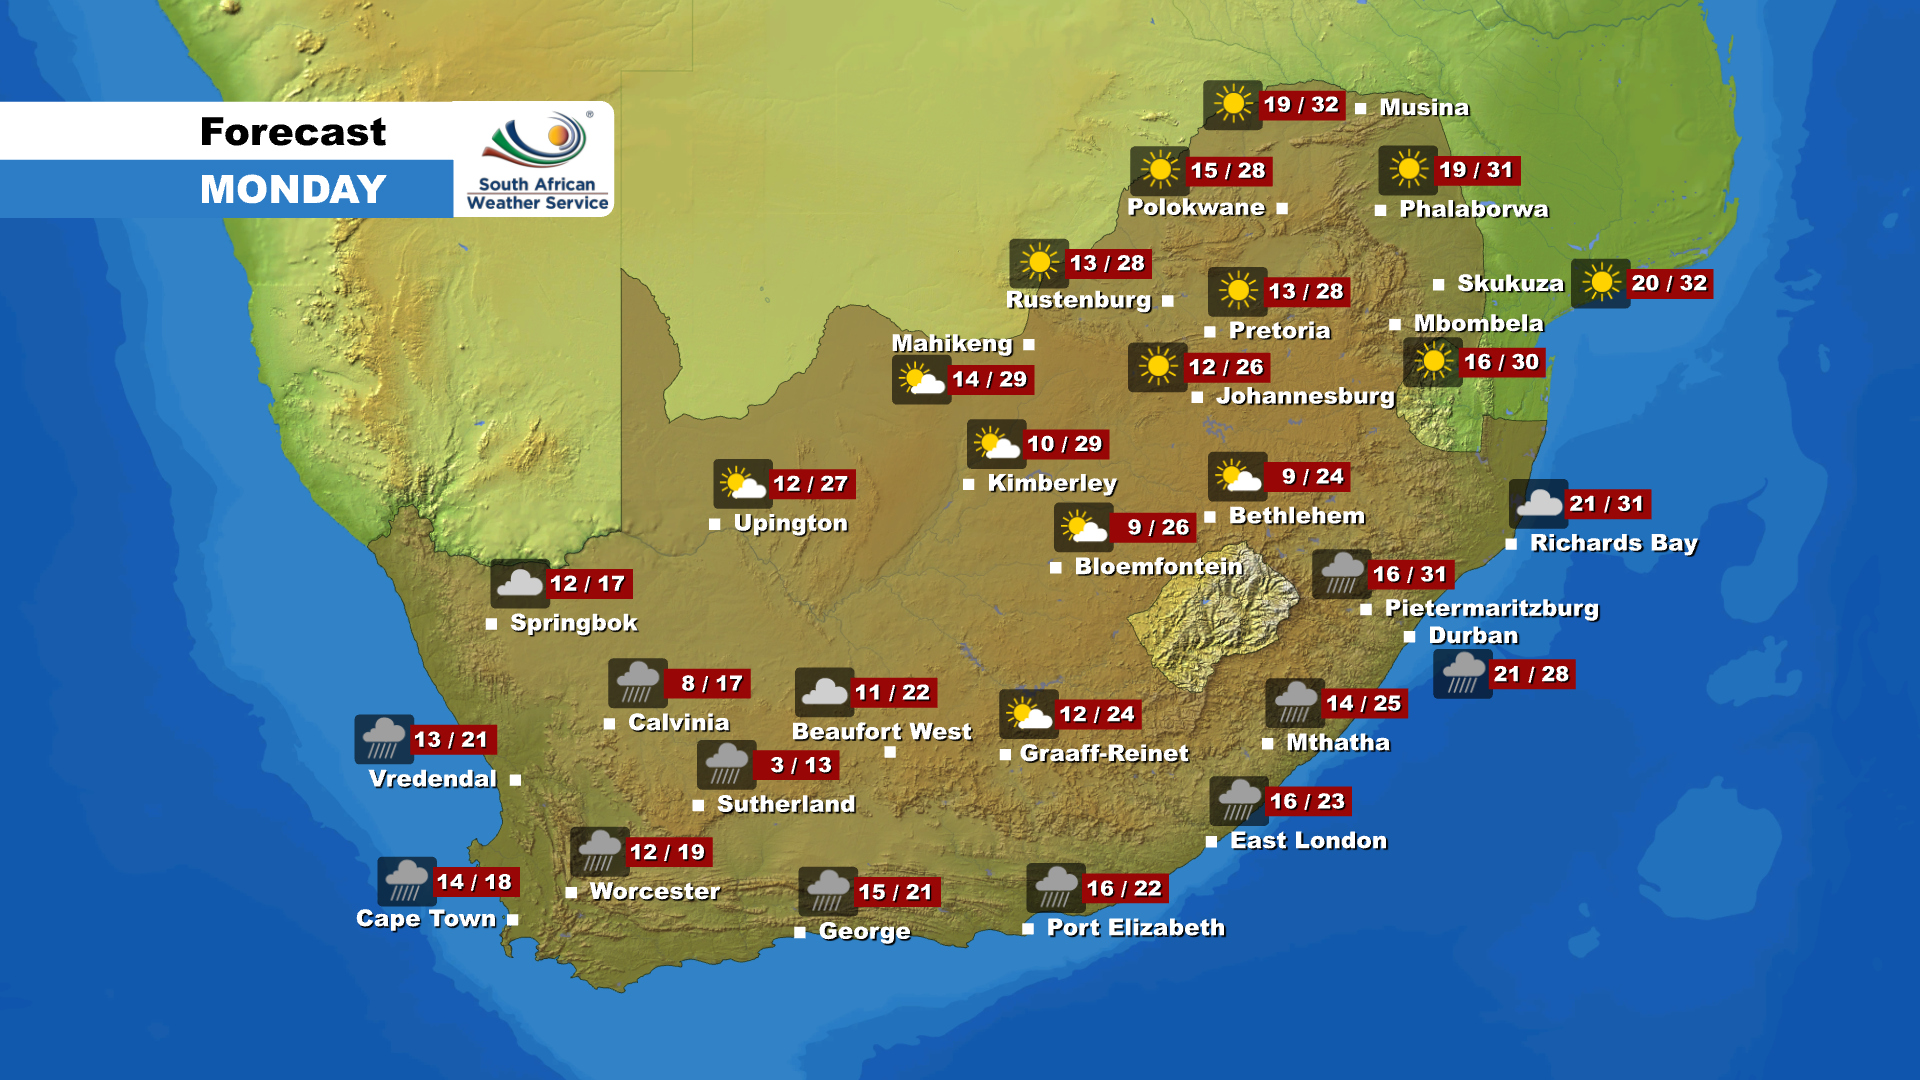 You can now also get your latest weather updates for #SouthAfrica on the eNCA website. Just follow this link: https://enca.com/weather-report